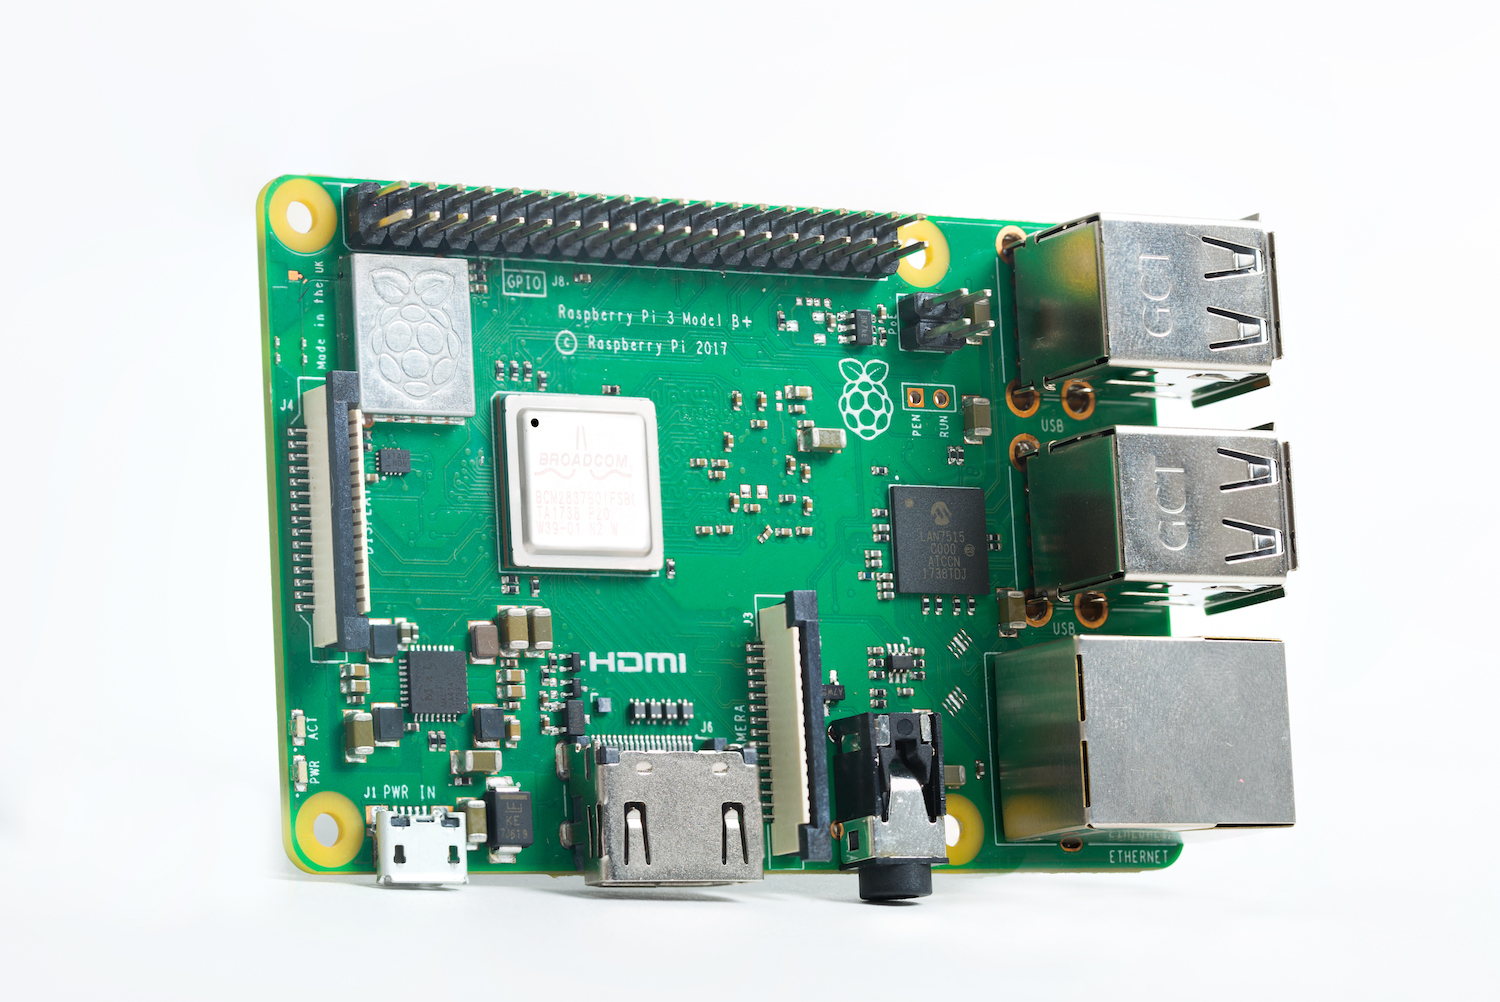 Raspberry Pi 3 Model B+ on sale now at $35 - Raspberry Pi